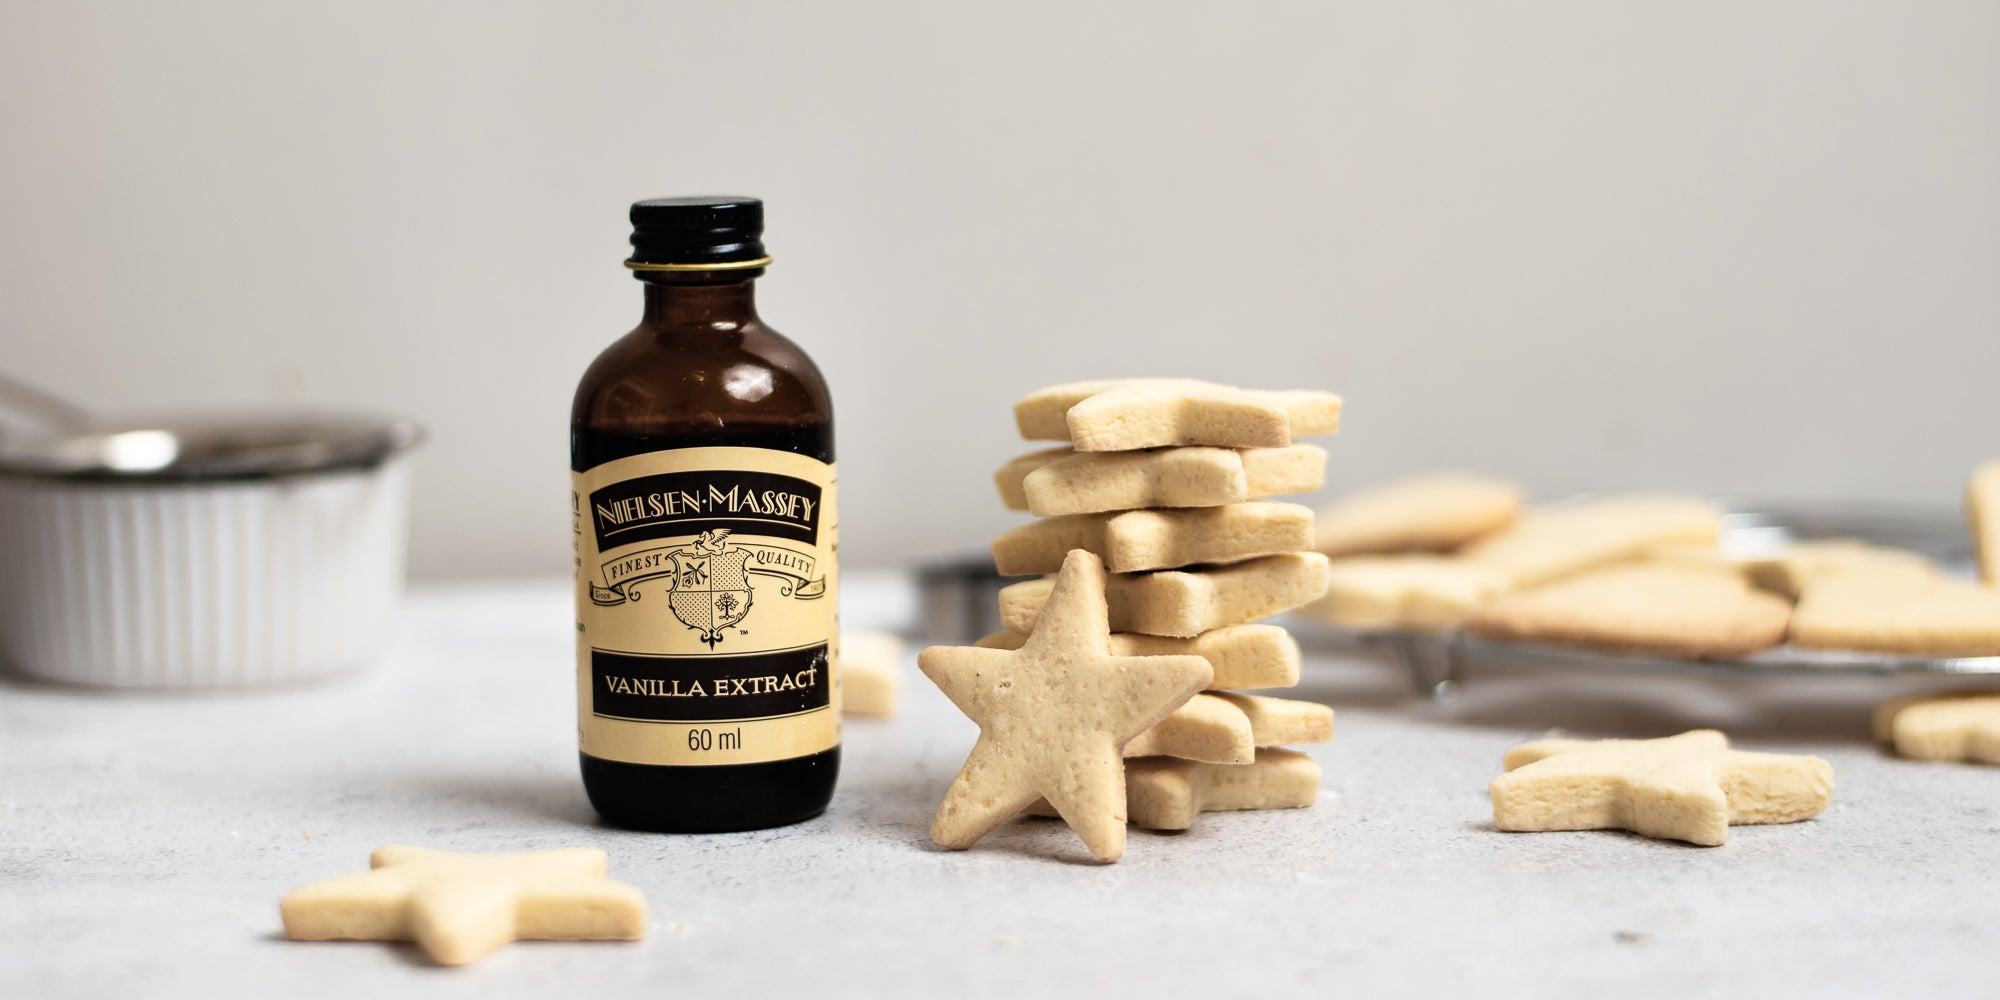 A stack of star shaped gluten free biscuits next to a bottle of Neilsen Massey vanilla extract